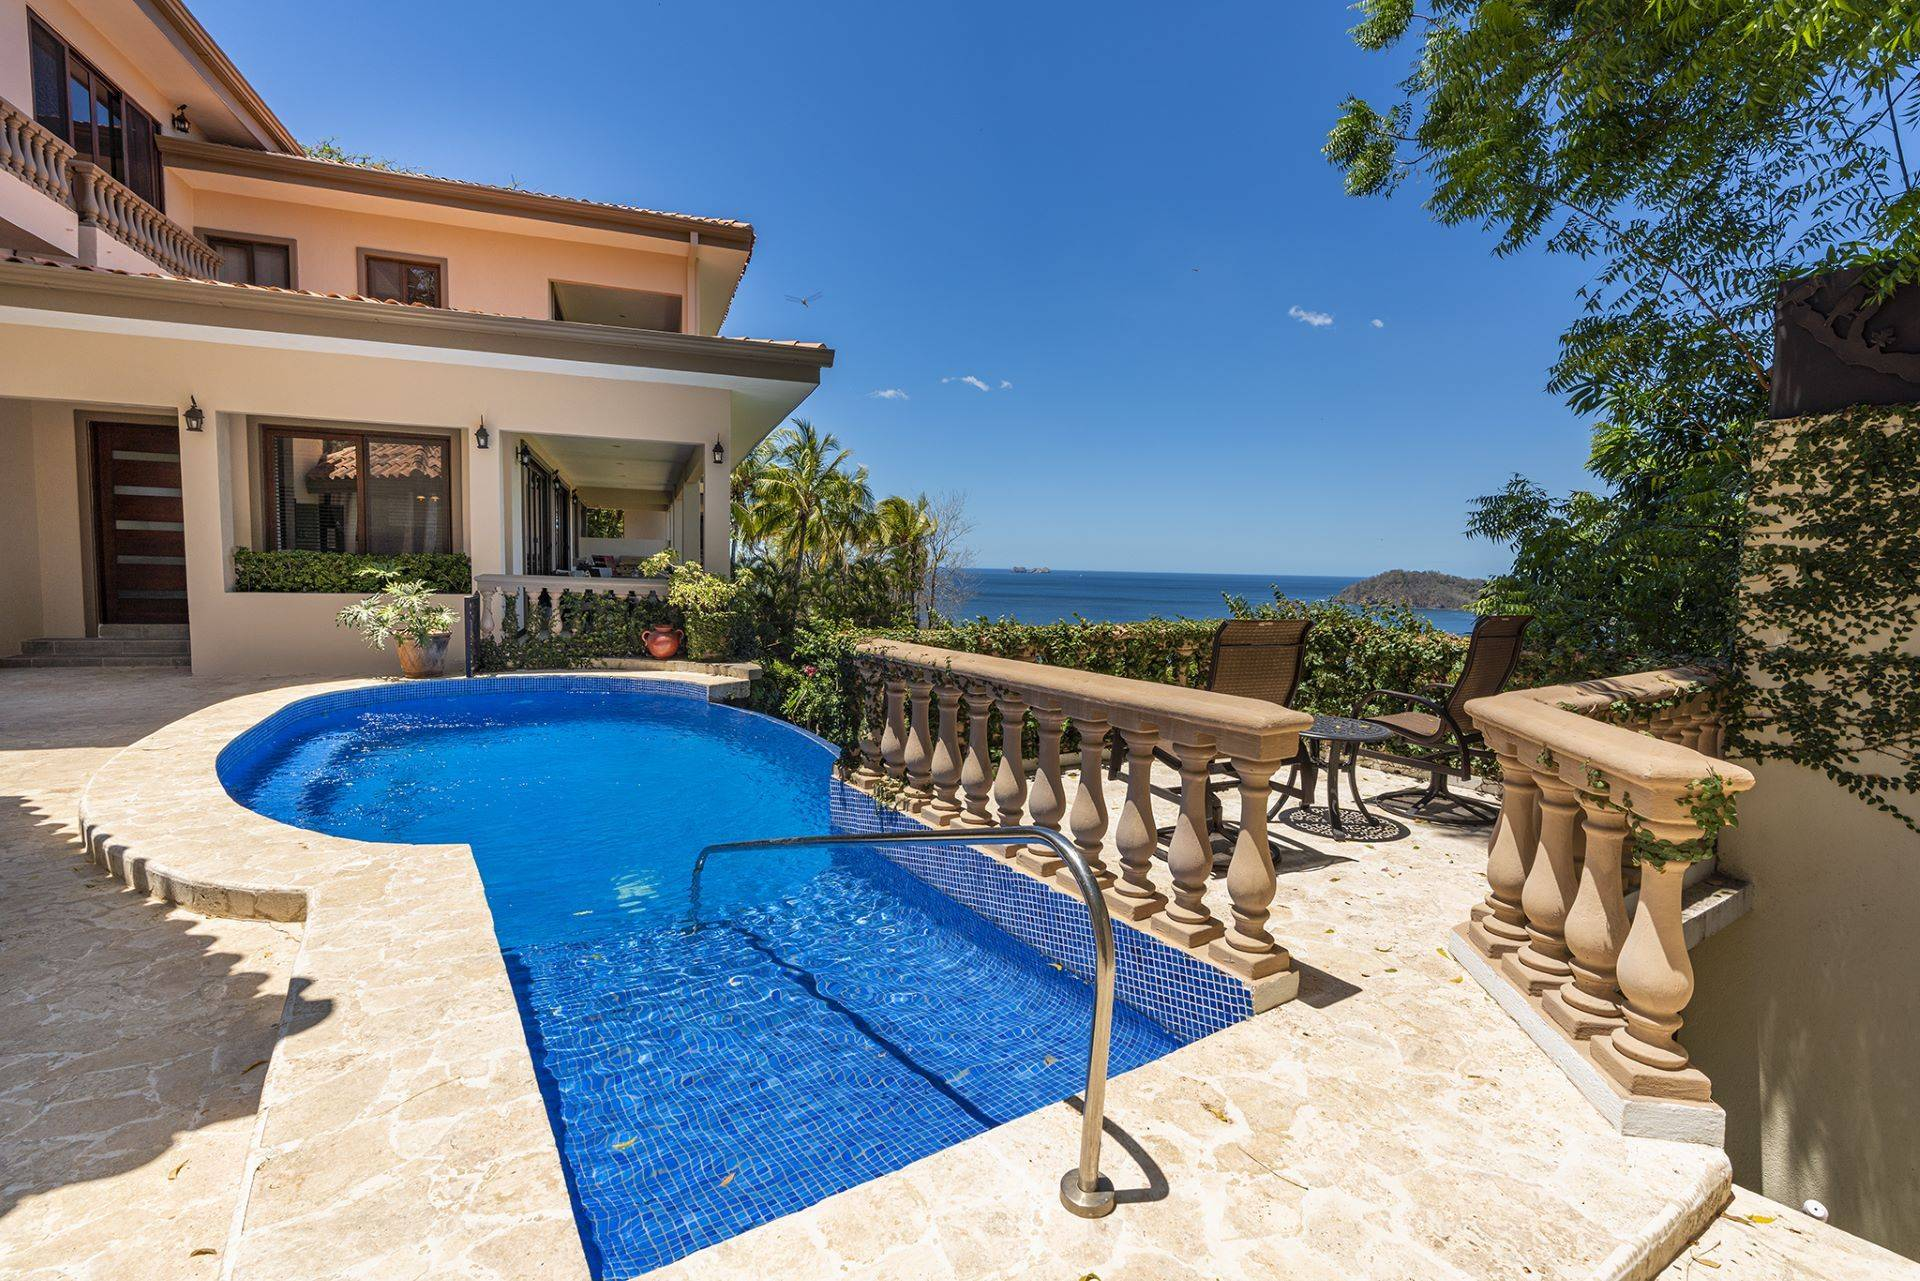 Amazing Ocean view Home Casa de los Pajaros- UNDER CONTRACT!